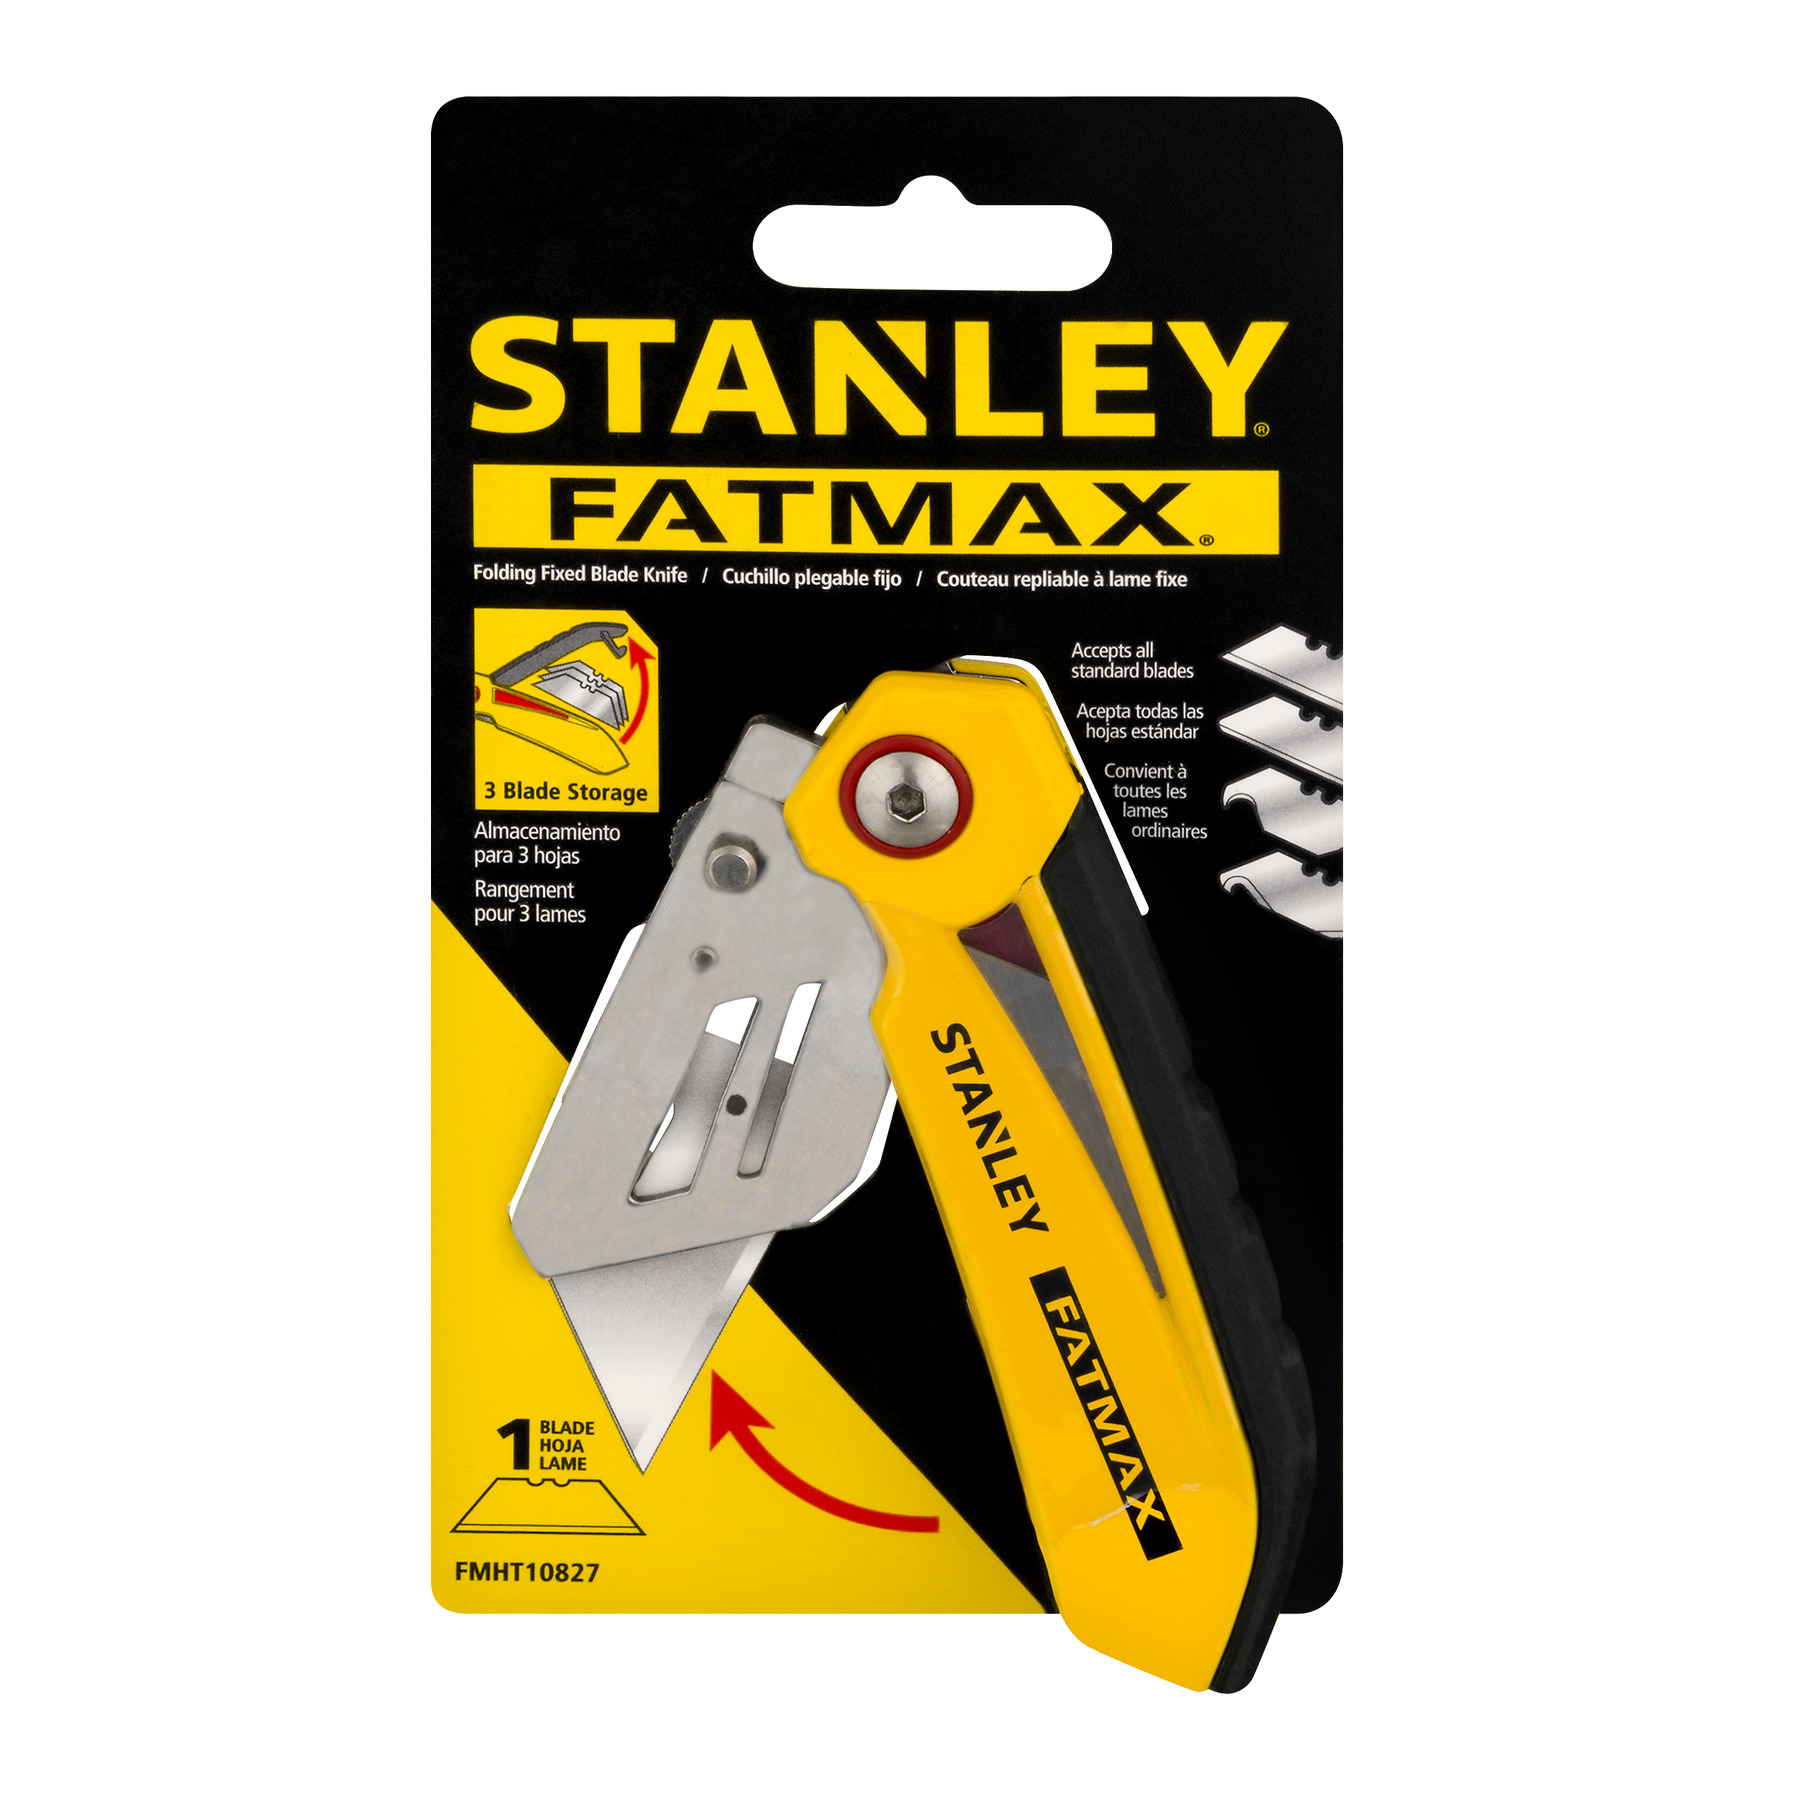 STANLEY FatMax FMHT10827 Folding Fixed Blade Knife